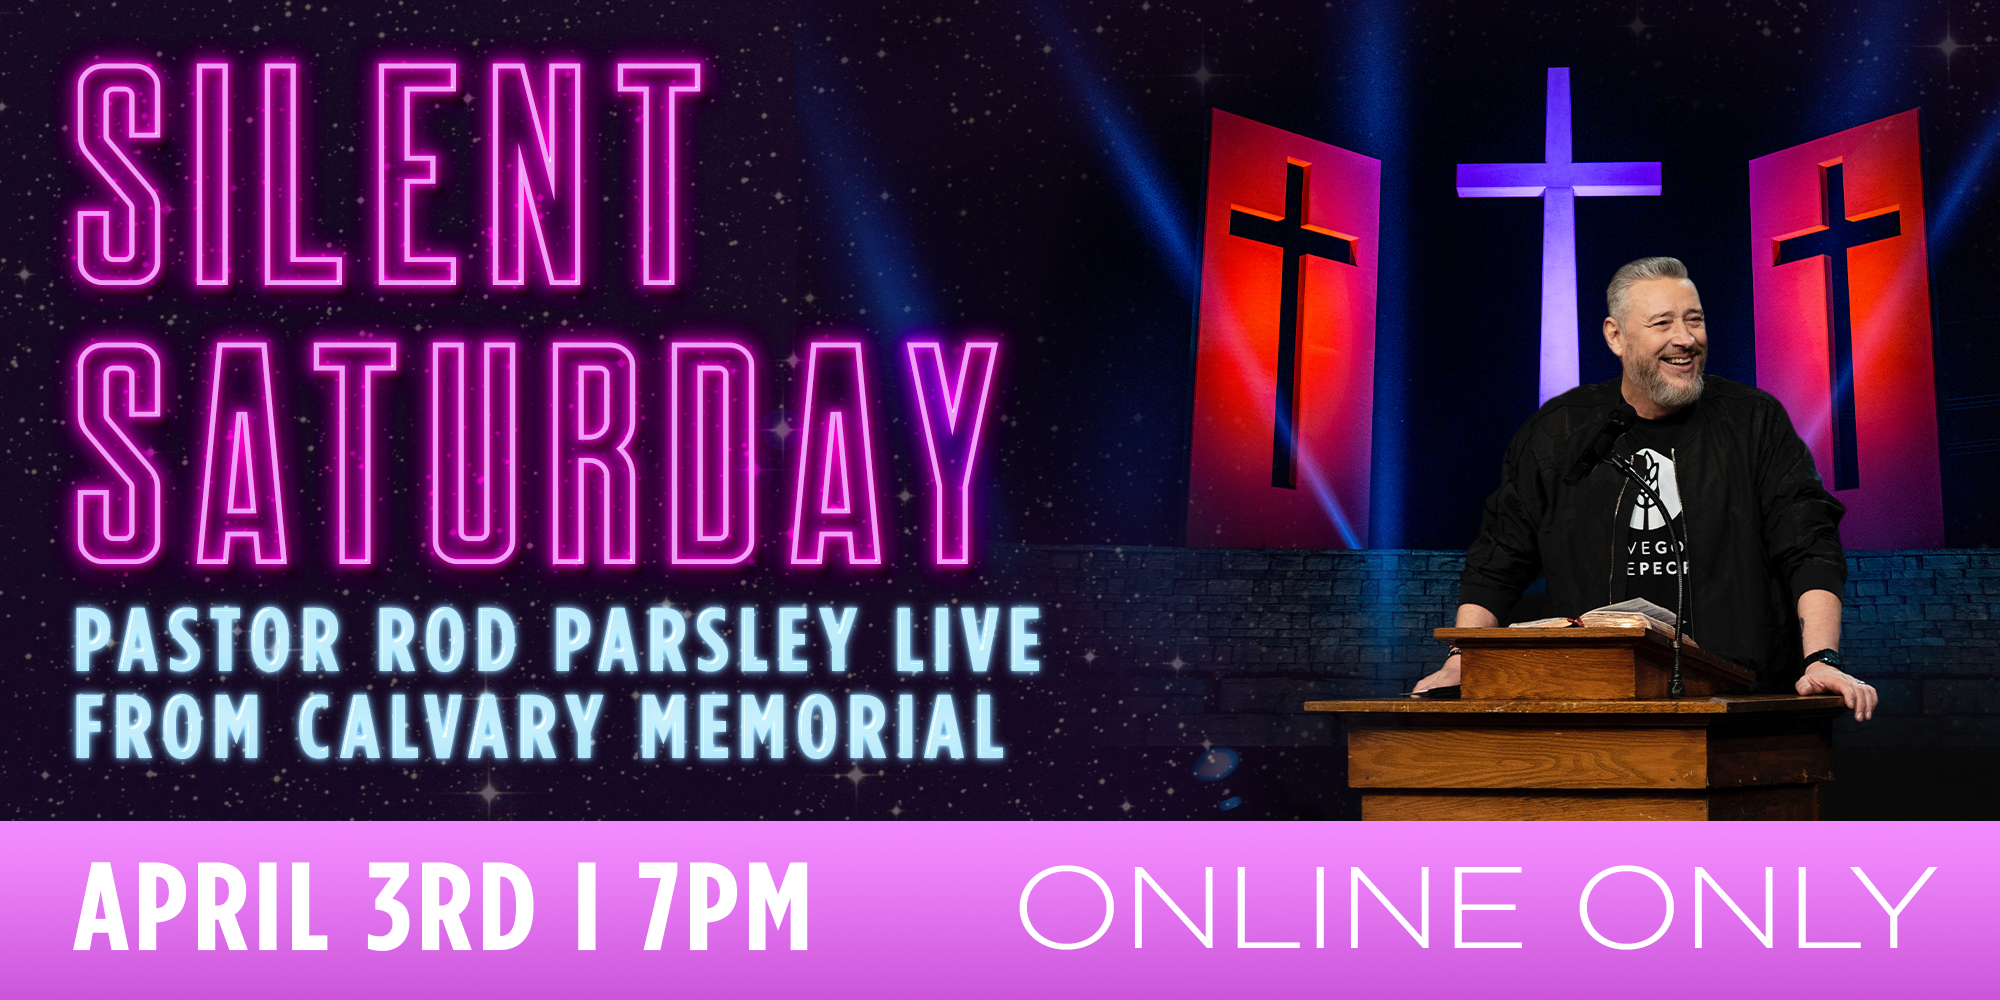 Silent Saturday Pastor Rod Parsley Live from Calvary Memorial April 3rd at 7pm Online Only